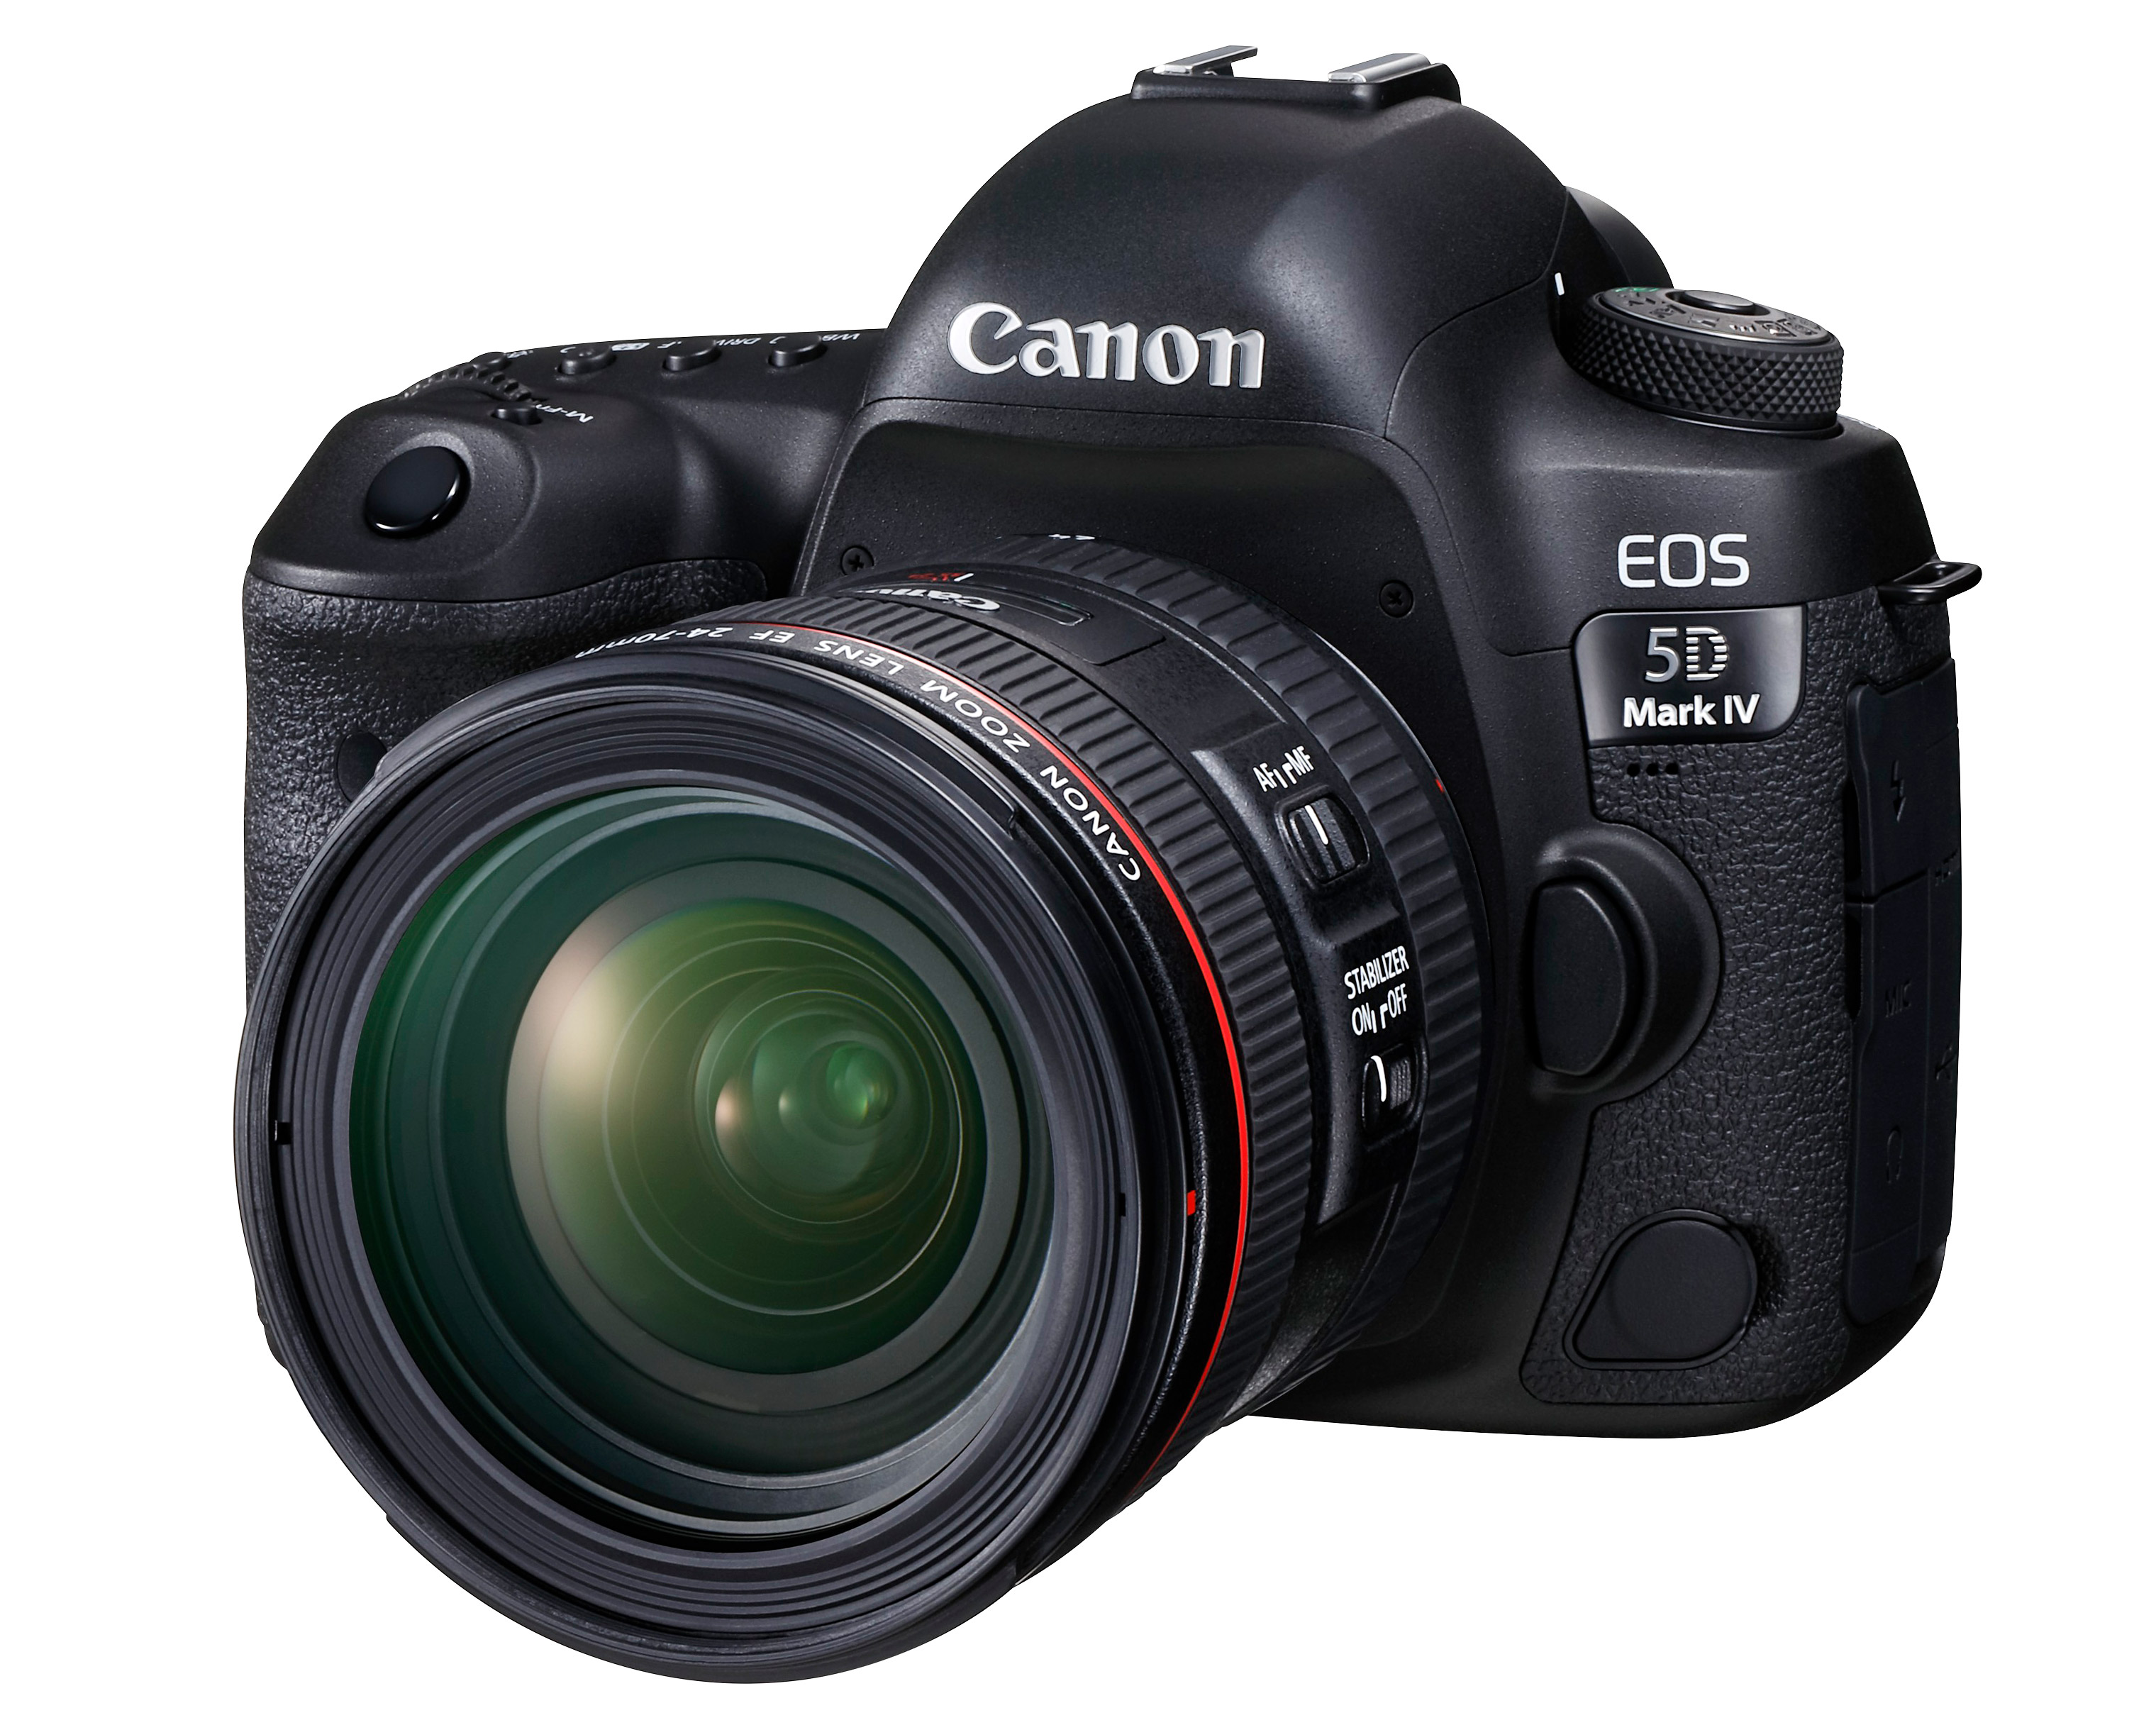 canon 5d mark iv specifications and opinions juzaphoto. Black Bedroom Furniture Sets. Home Design Ideas